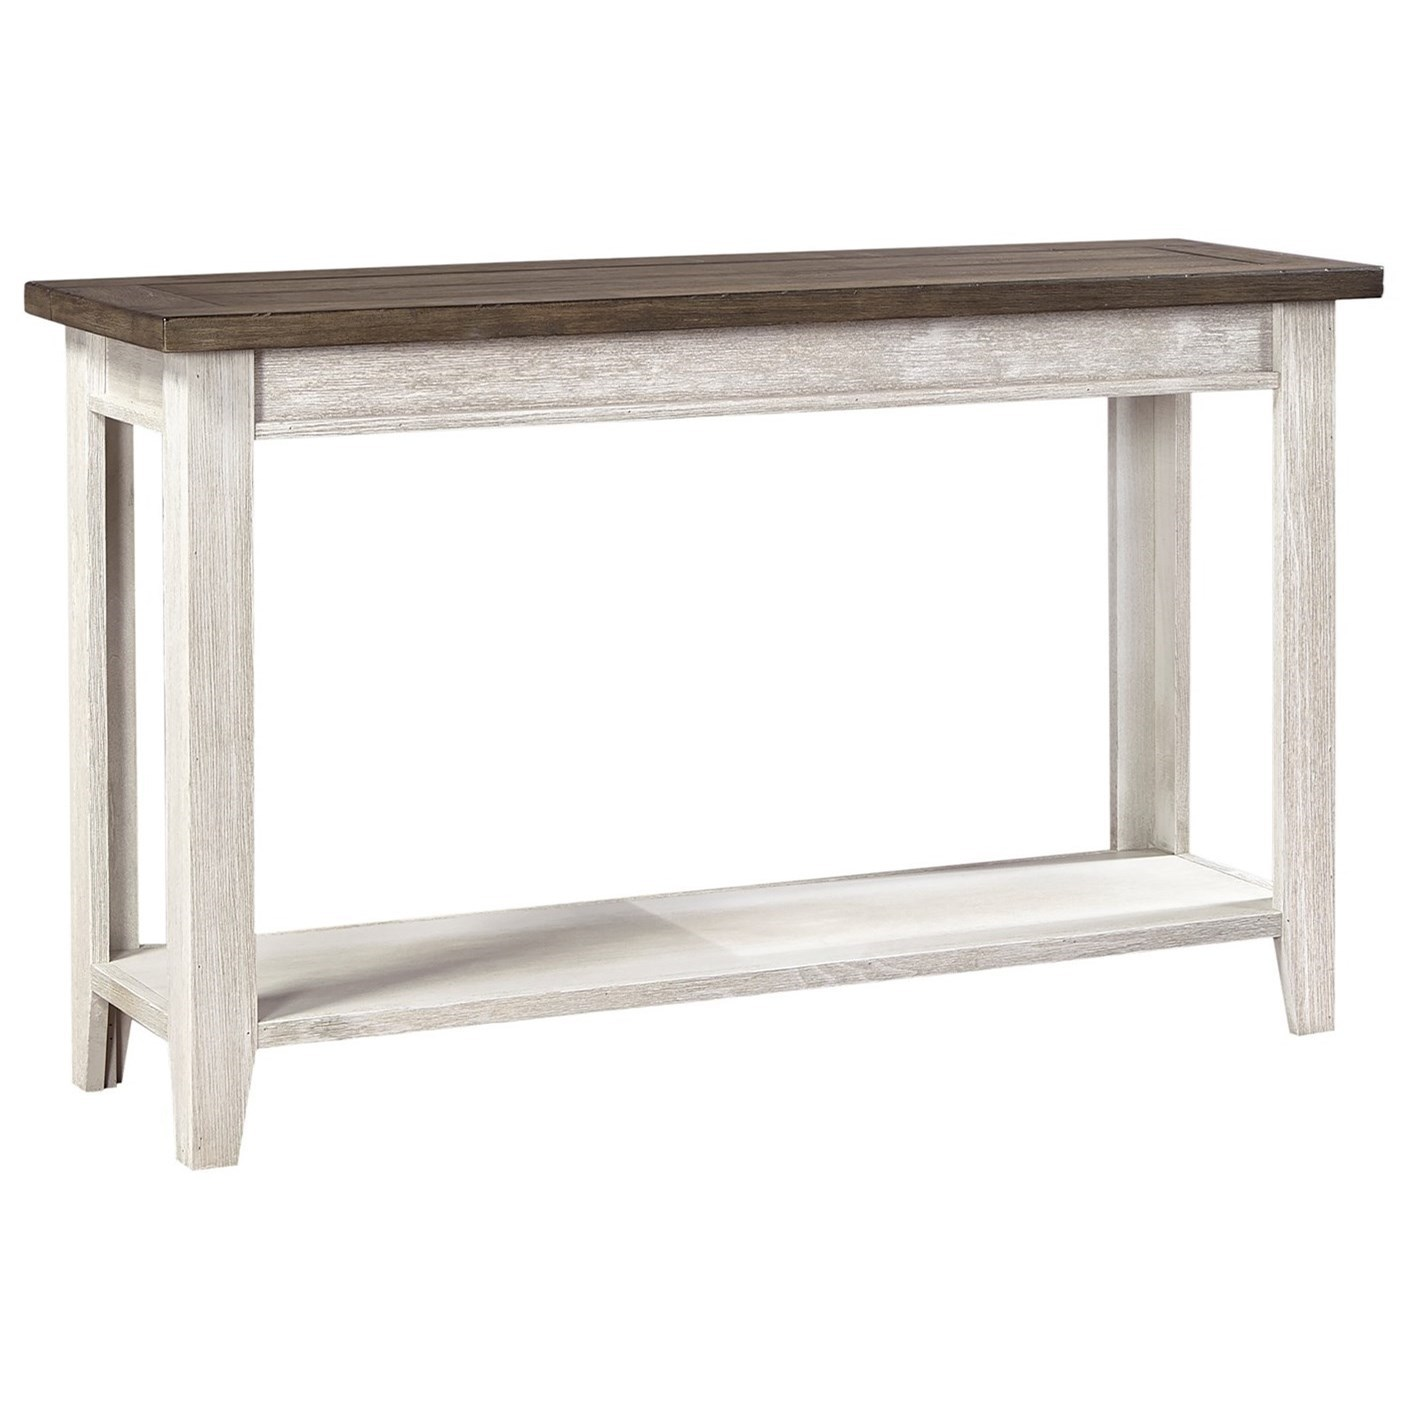 Sofa Table with Two-Tone Finish